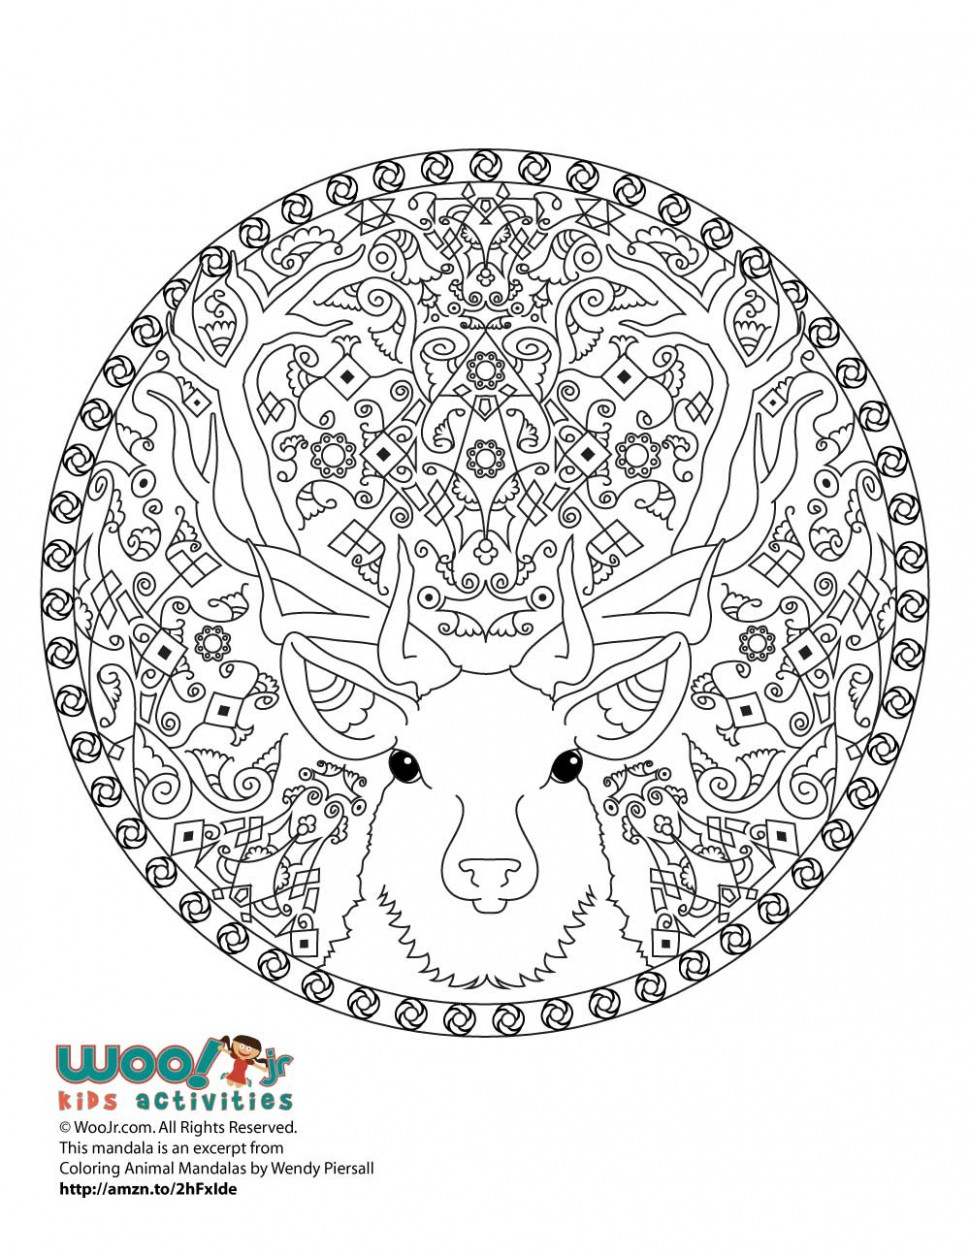 Reindeer Christmas Mandala Adult Coloring Page | Woo! Jr. Kids ...